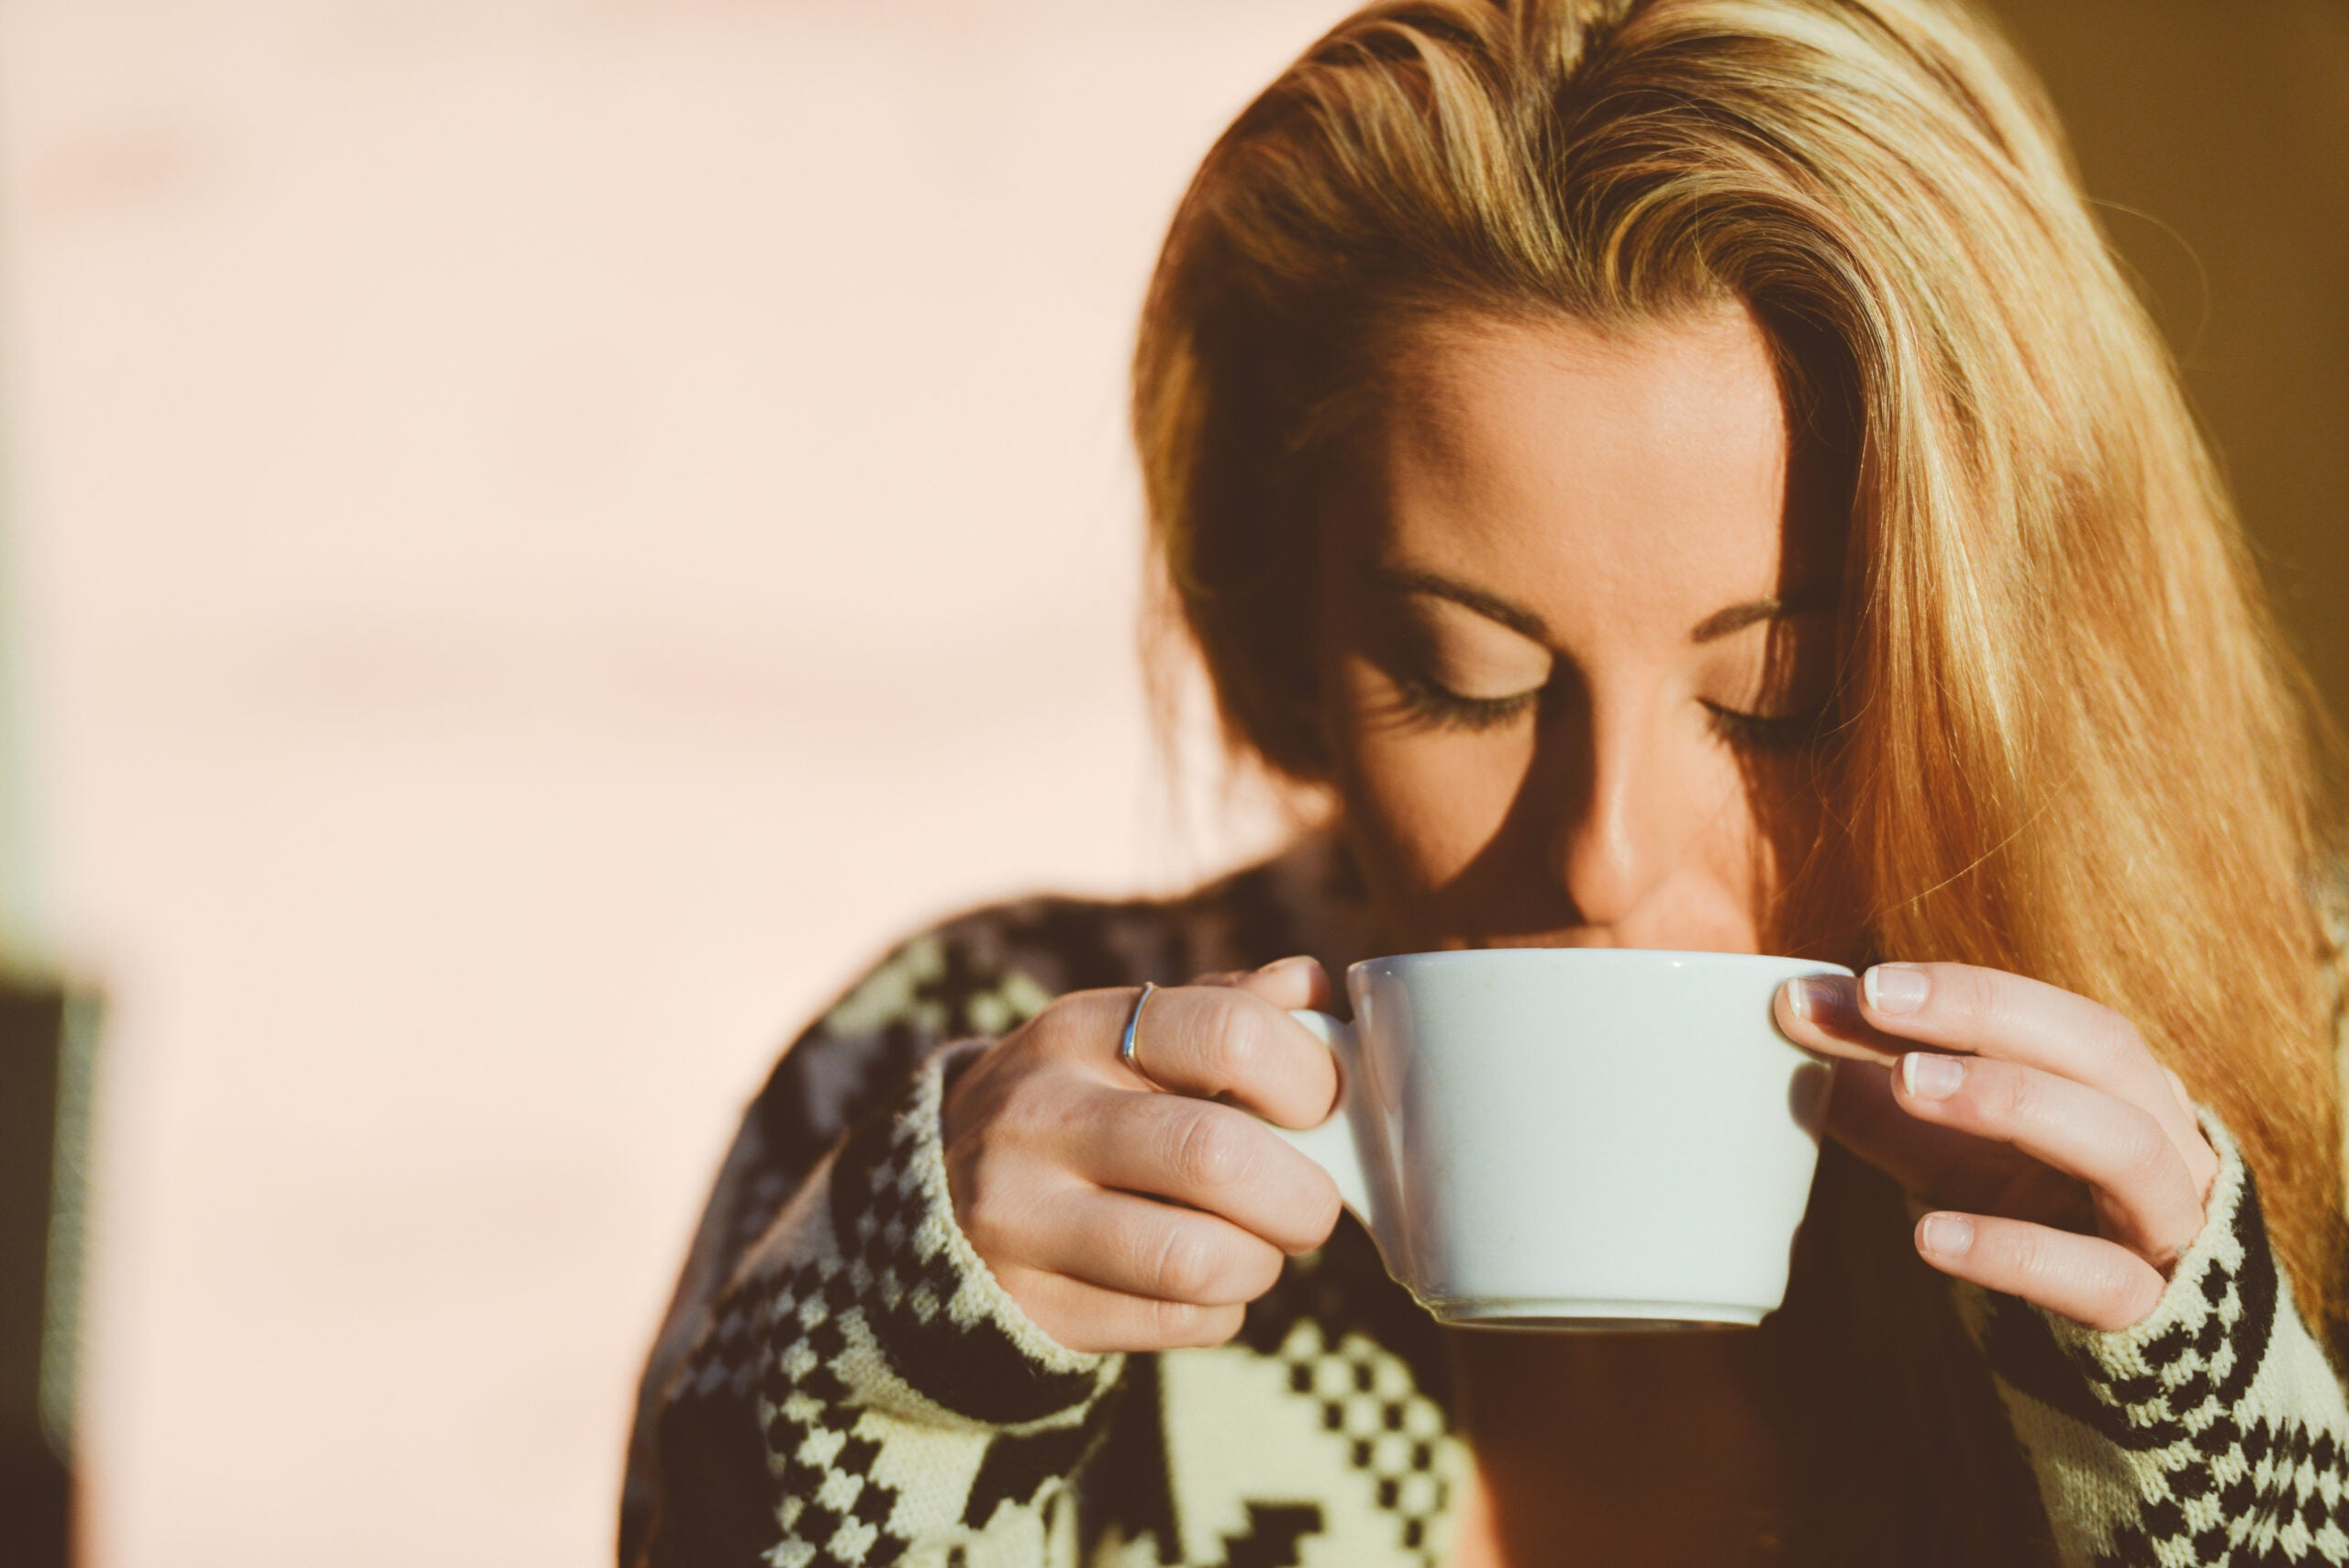 Yes, coffee drinkers seem to live longer. But don't get too excited.